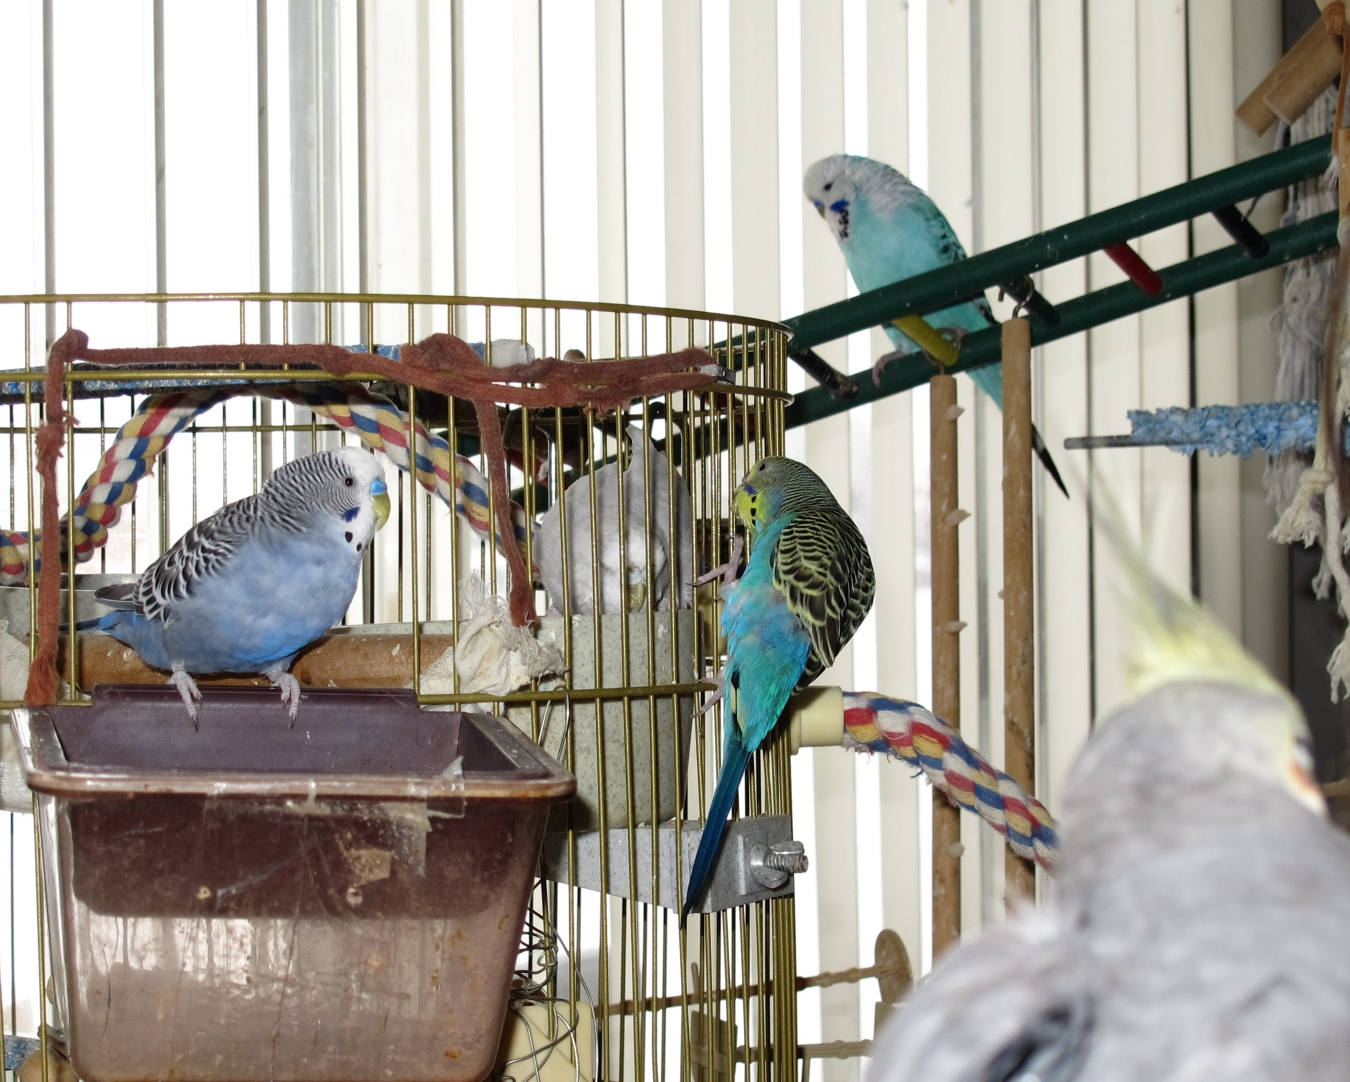 The Budgie Flock 2 by Windthin